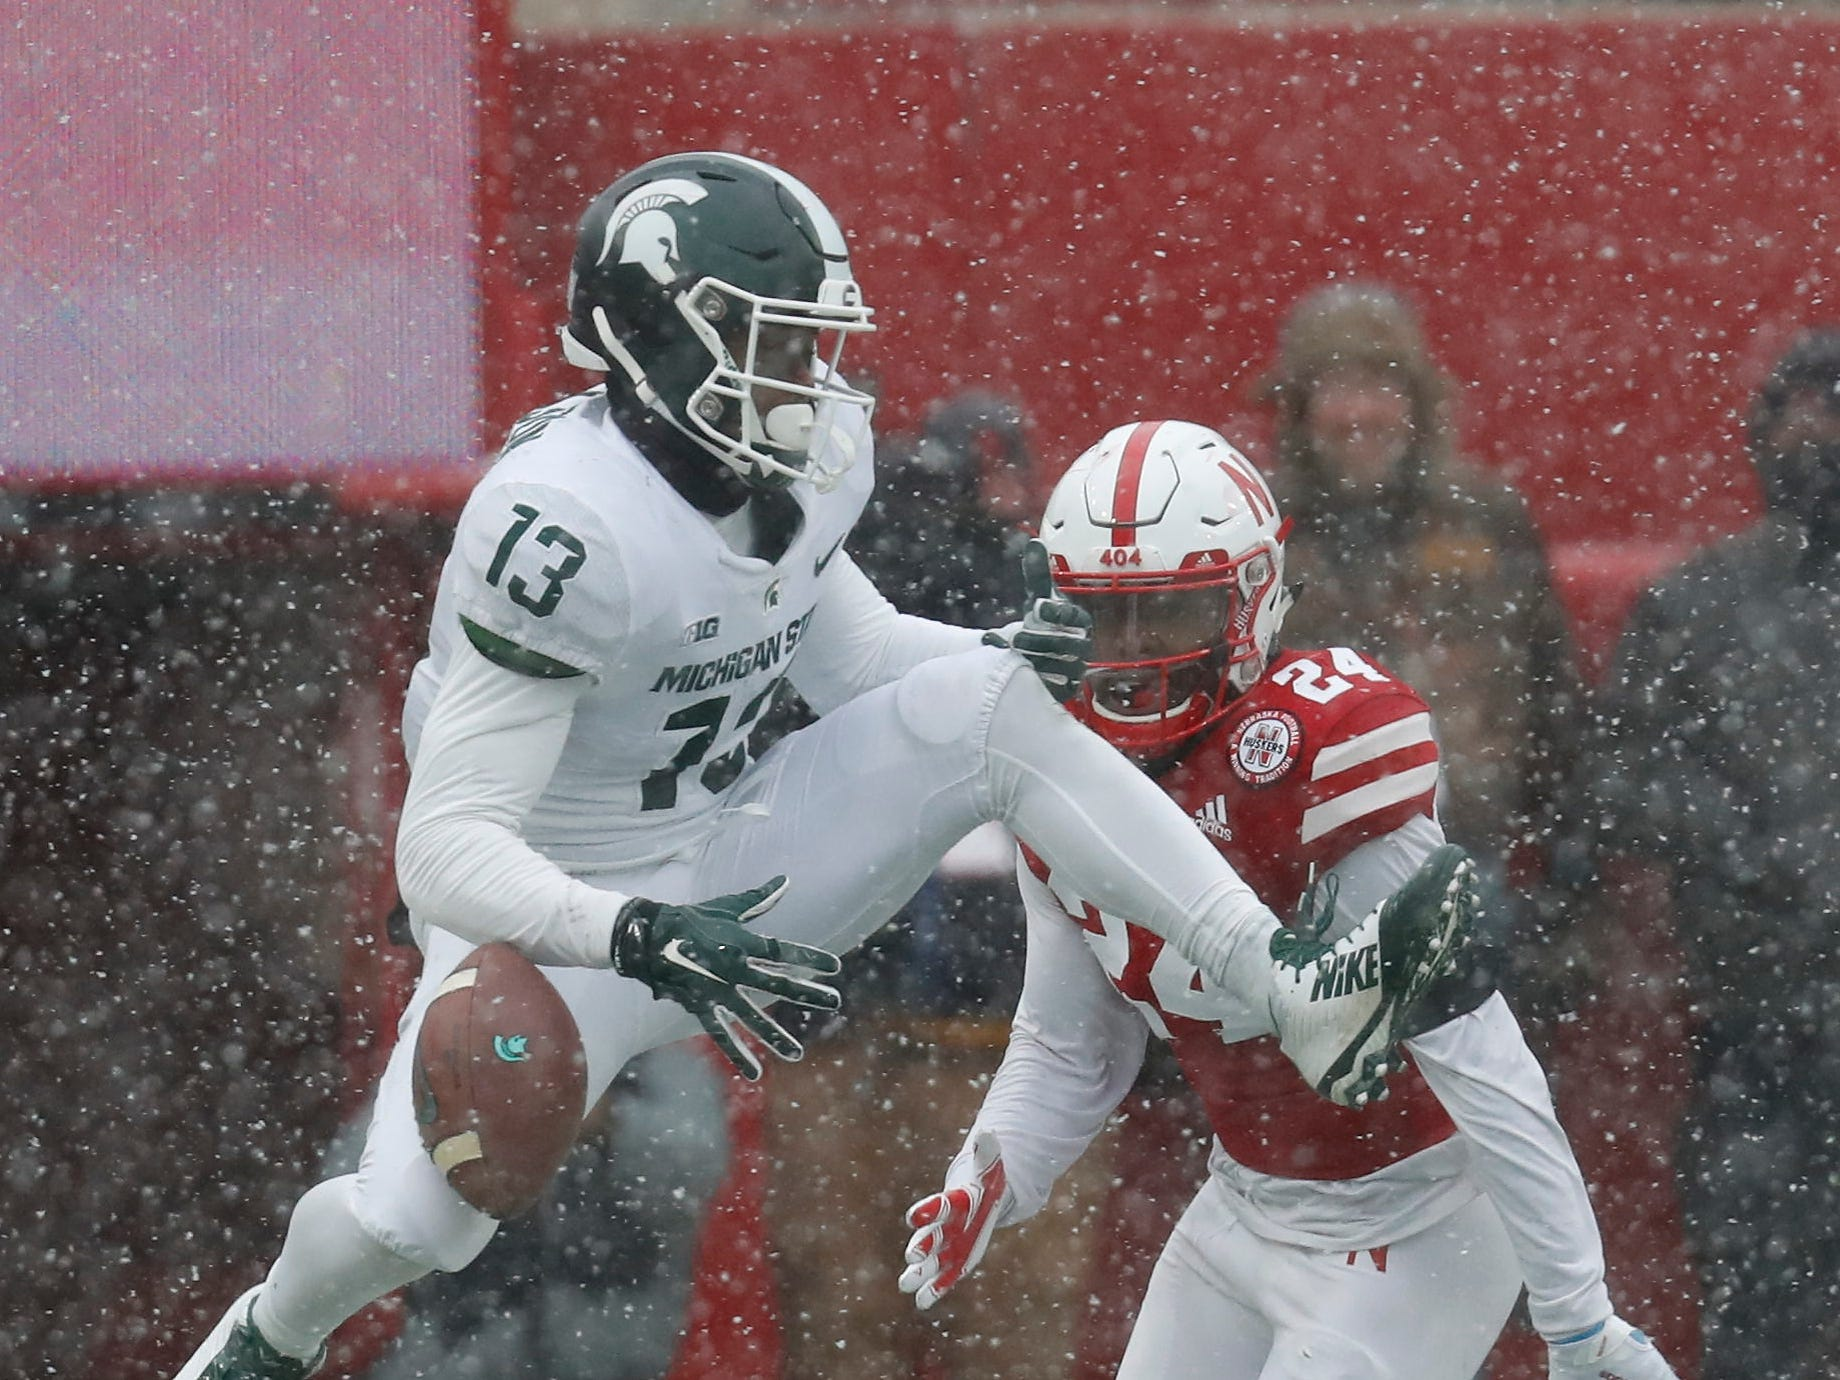 Michigan State receiver Laress Nelson drops a pass against Nebraska late in the fourth quarter at Memorial Stadium on Nov. 17, 2018 in Lincoln, Neb.